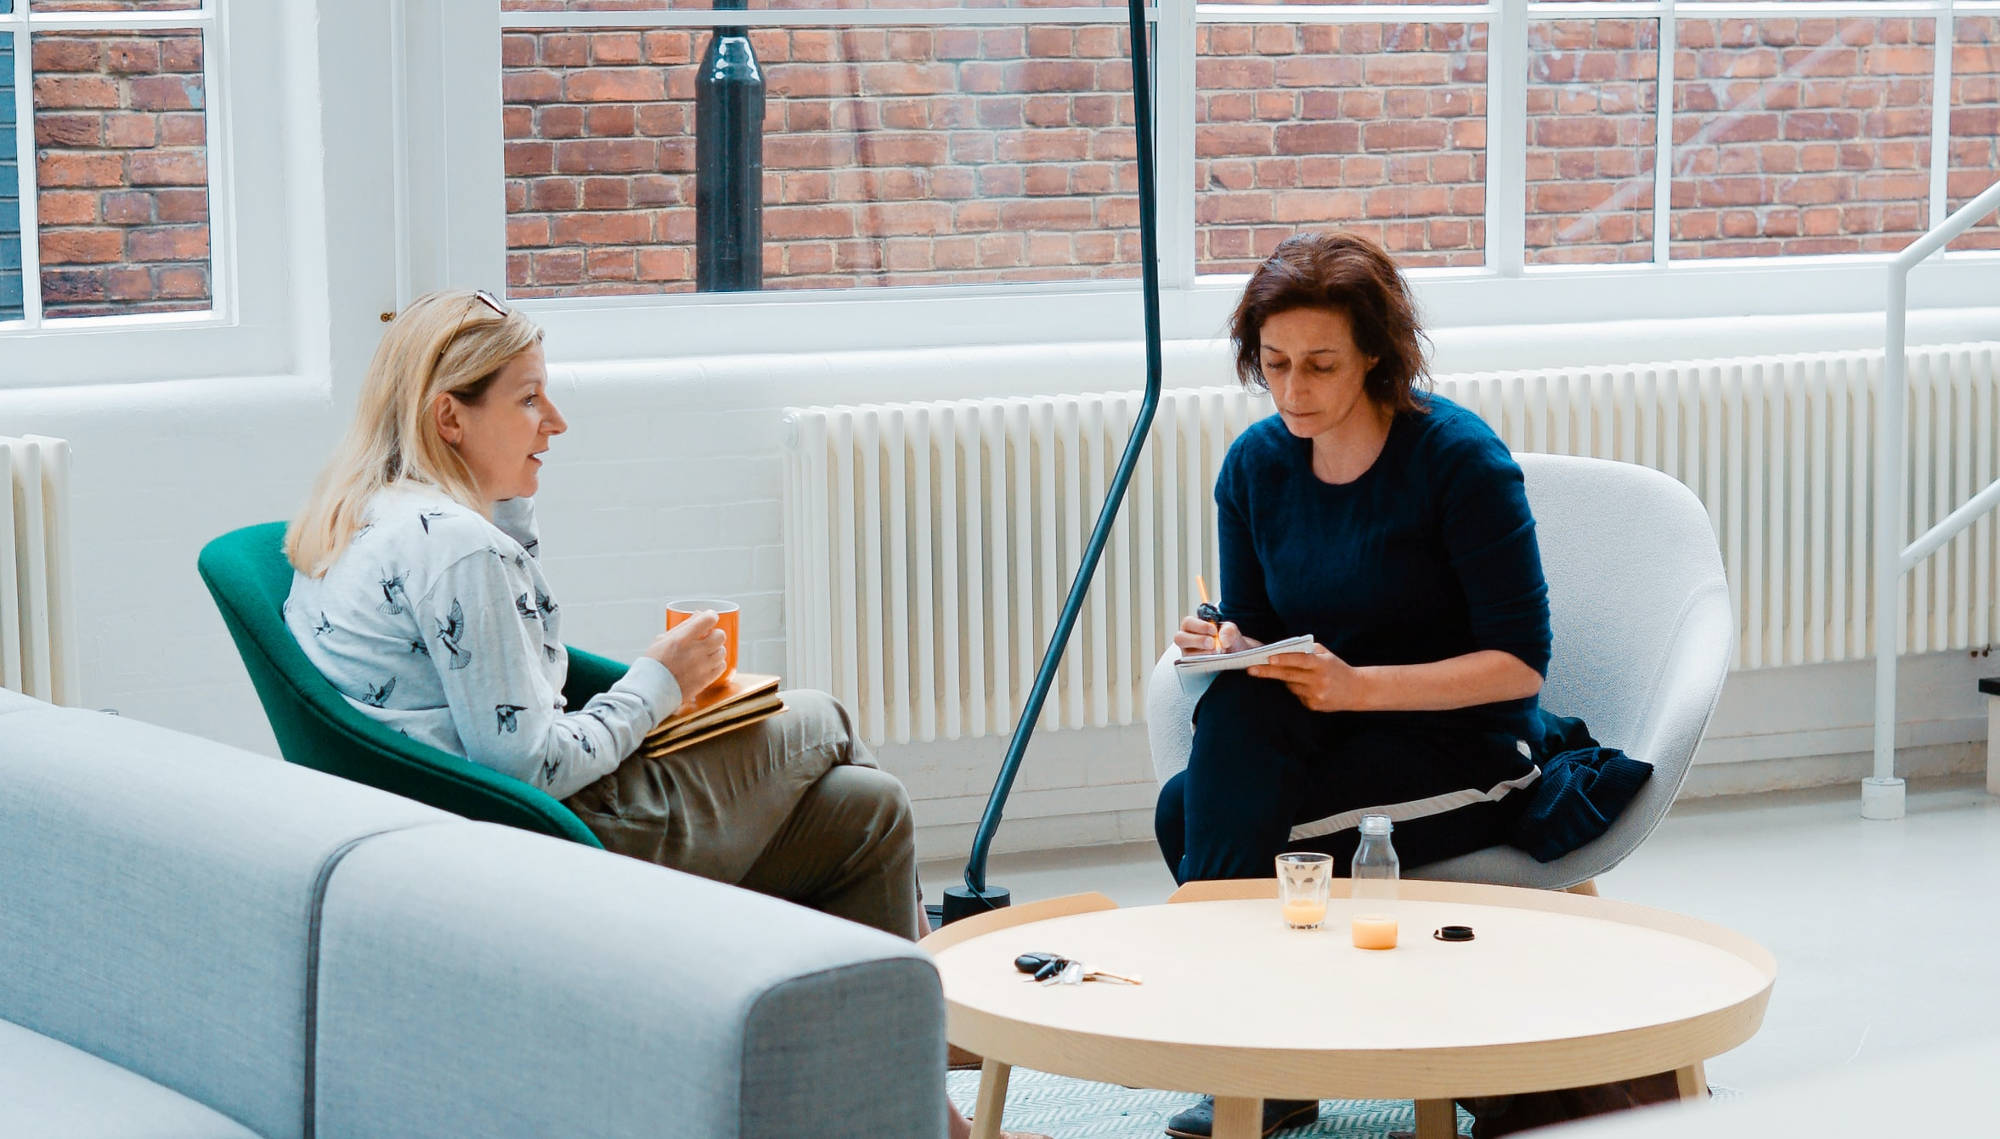 Two women sitting on couches in an office having a serious discussion.